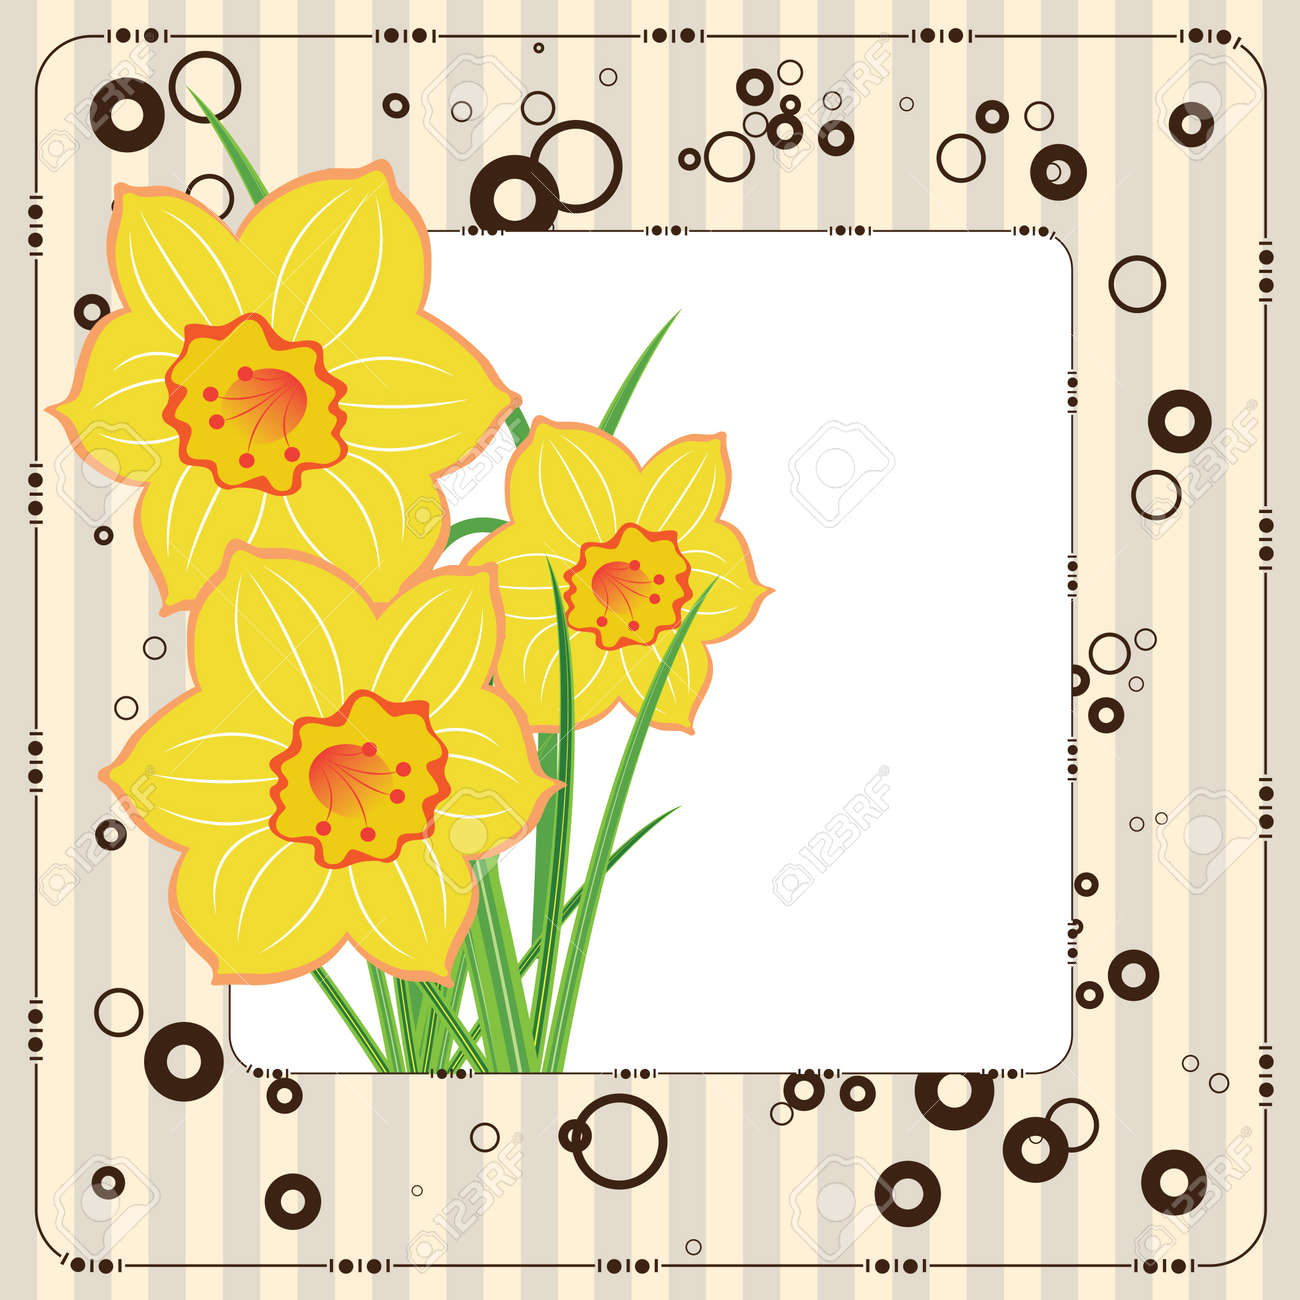 Magnificent 010 Editor Templates Small 10 Envelope Template Illustrator Round 100 Day Glasses Template 100 Greatest Resume Words Young 1099 Agreement Template Coloured1099 Pay Stub Template Bouquet Of Daffodils, Greeting Card, Vector Template Royalty Free ..